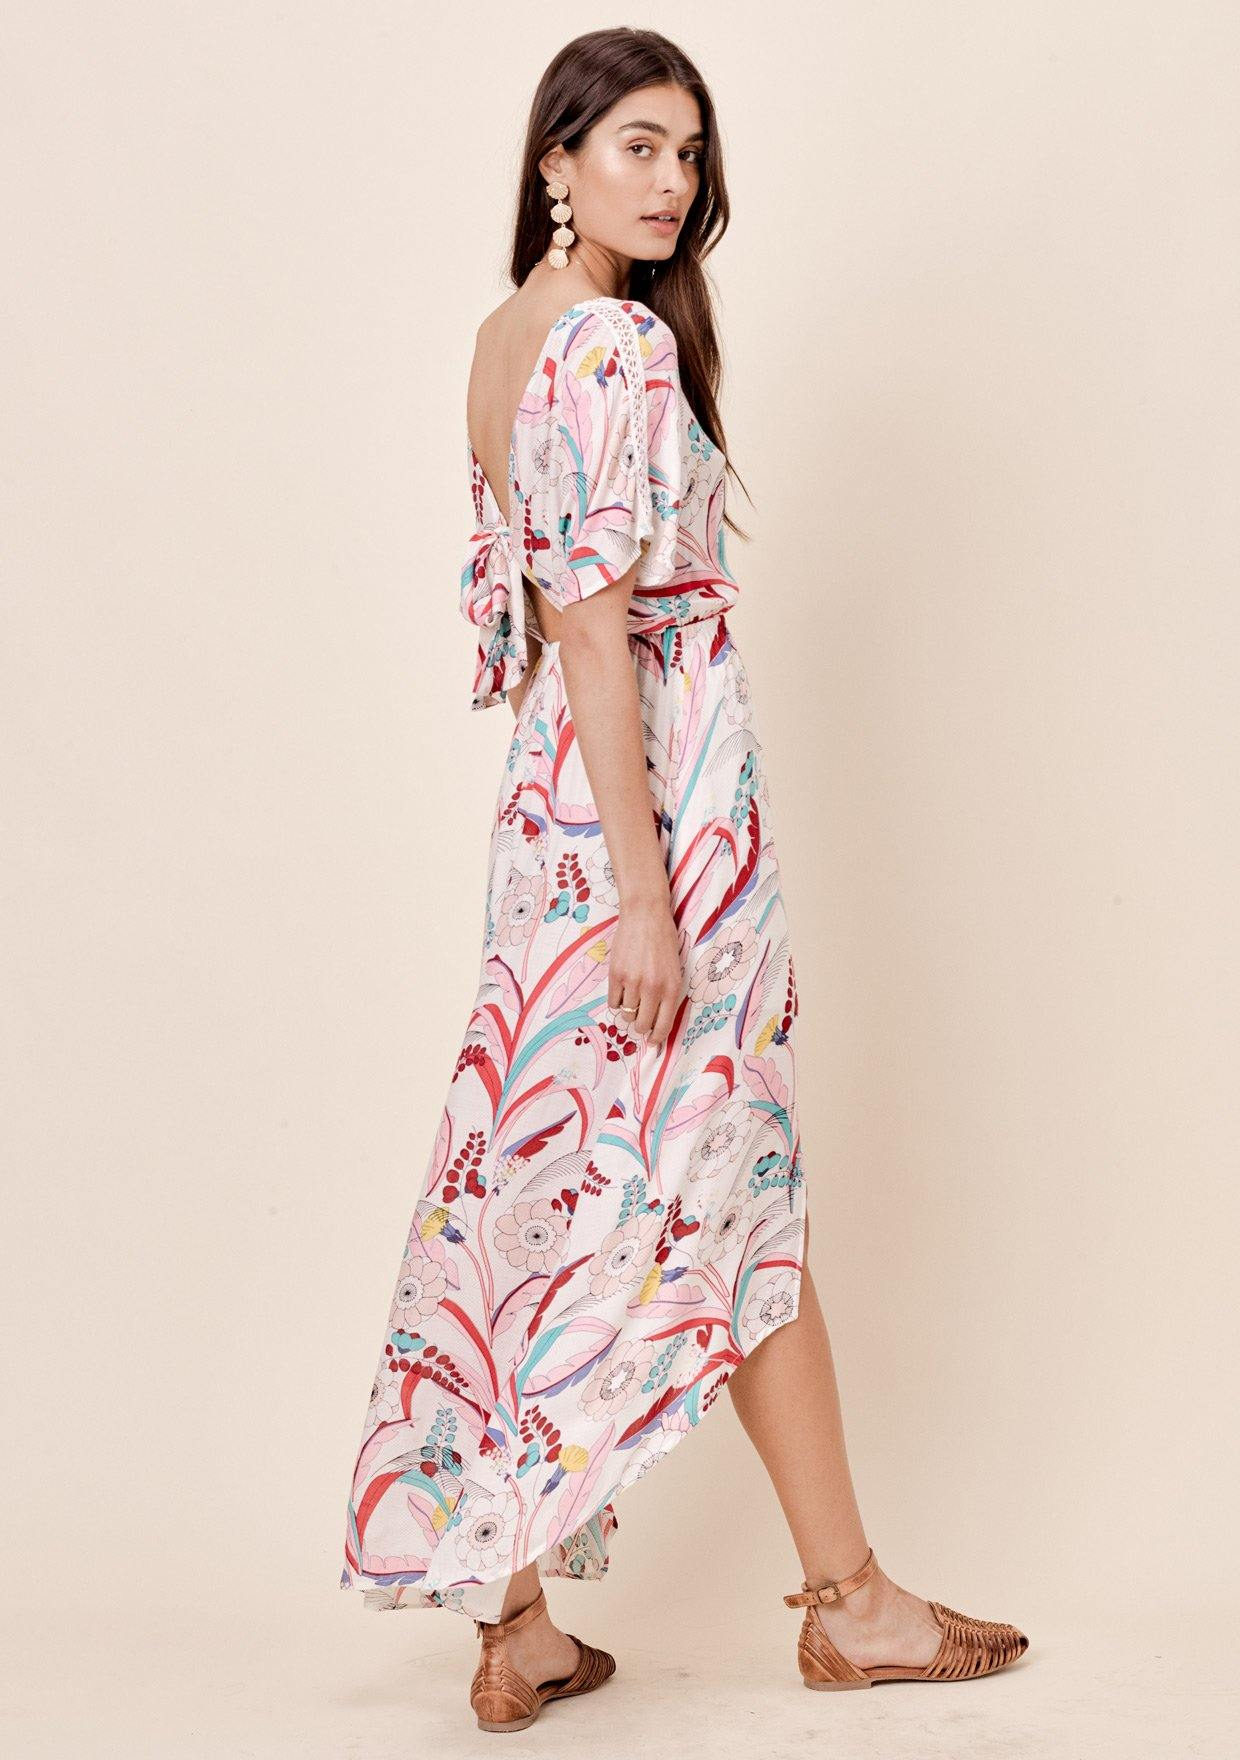 d0a7f36b06 ... [Color: Taupe/Pink] Lovestitch whimsical floral printed maxi dress with  crochet lace ...